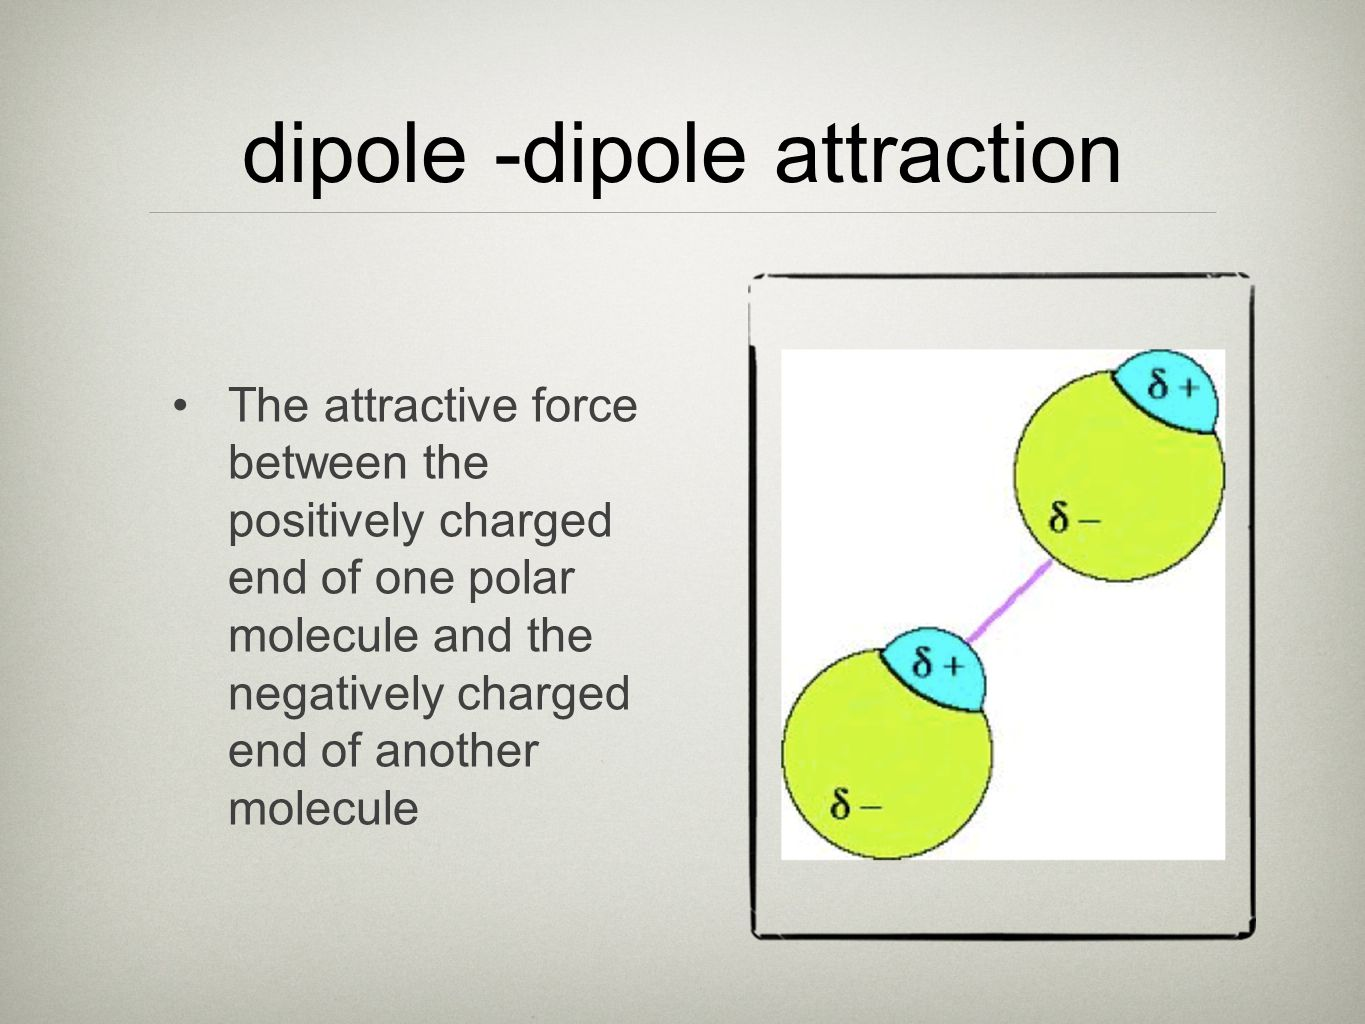 dipole -dipole attraction